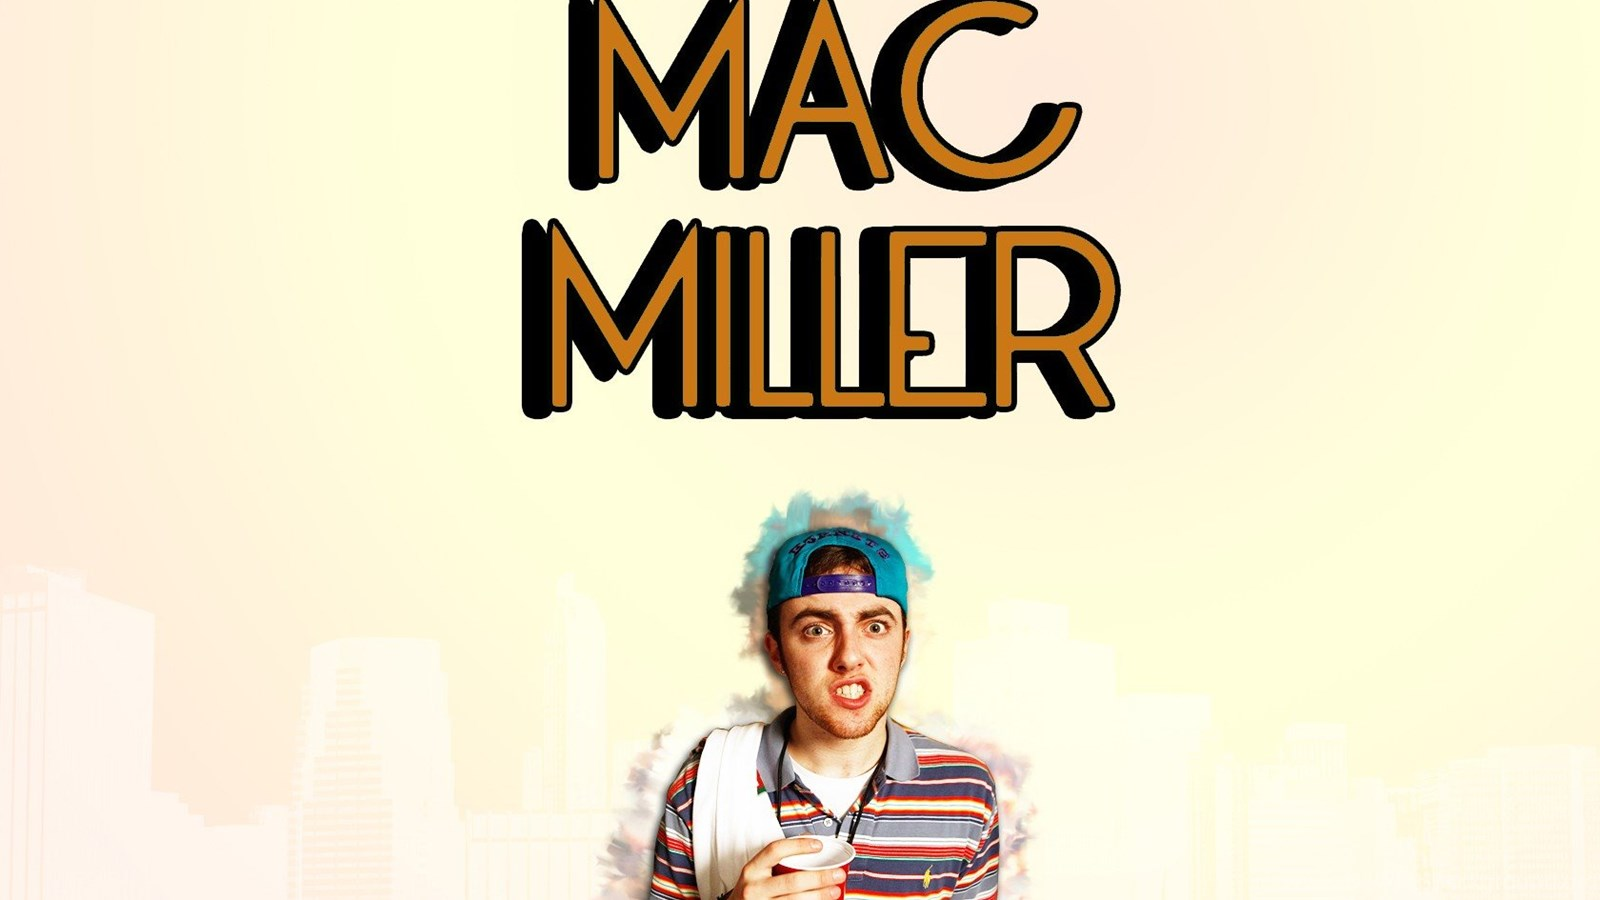 Mac Miller Wallpapers HD Desktop Background